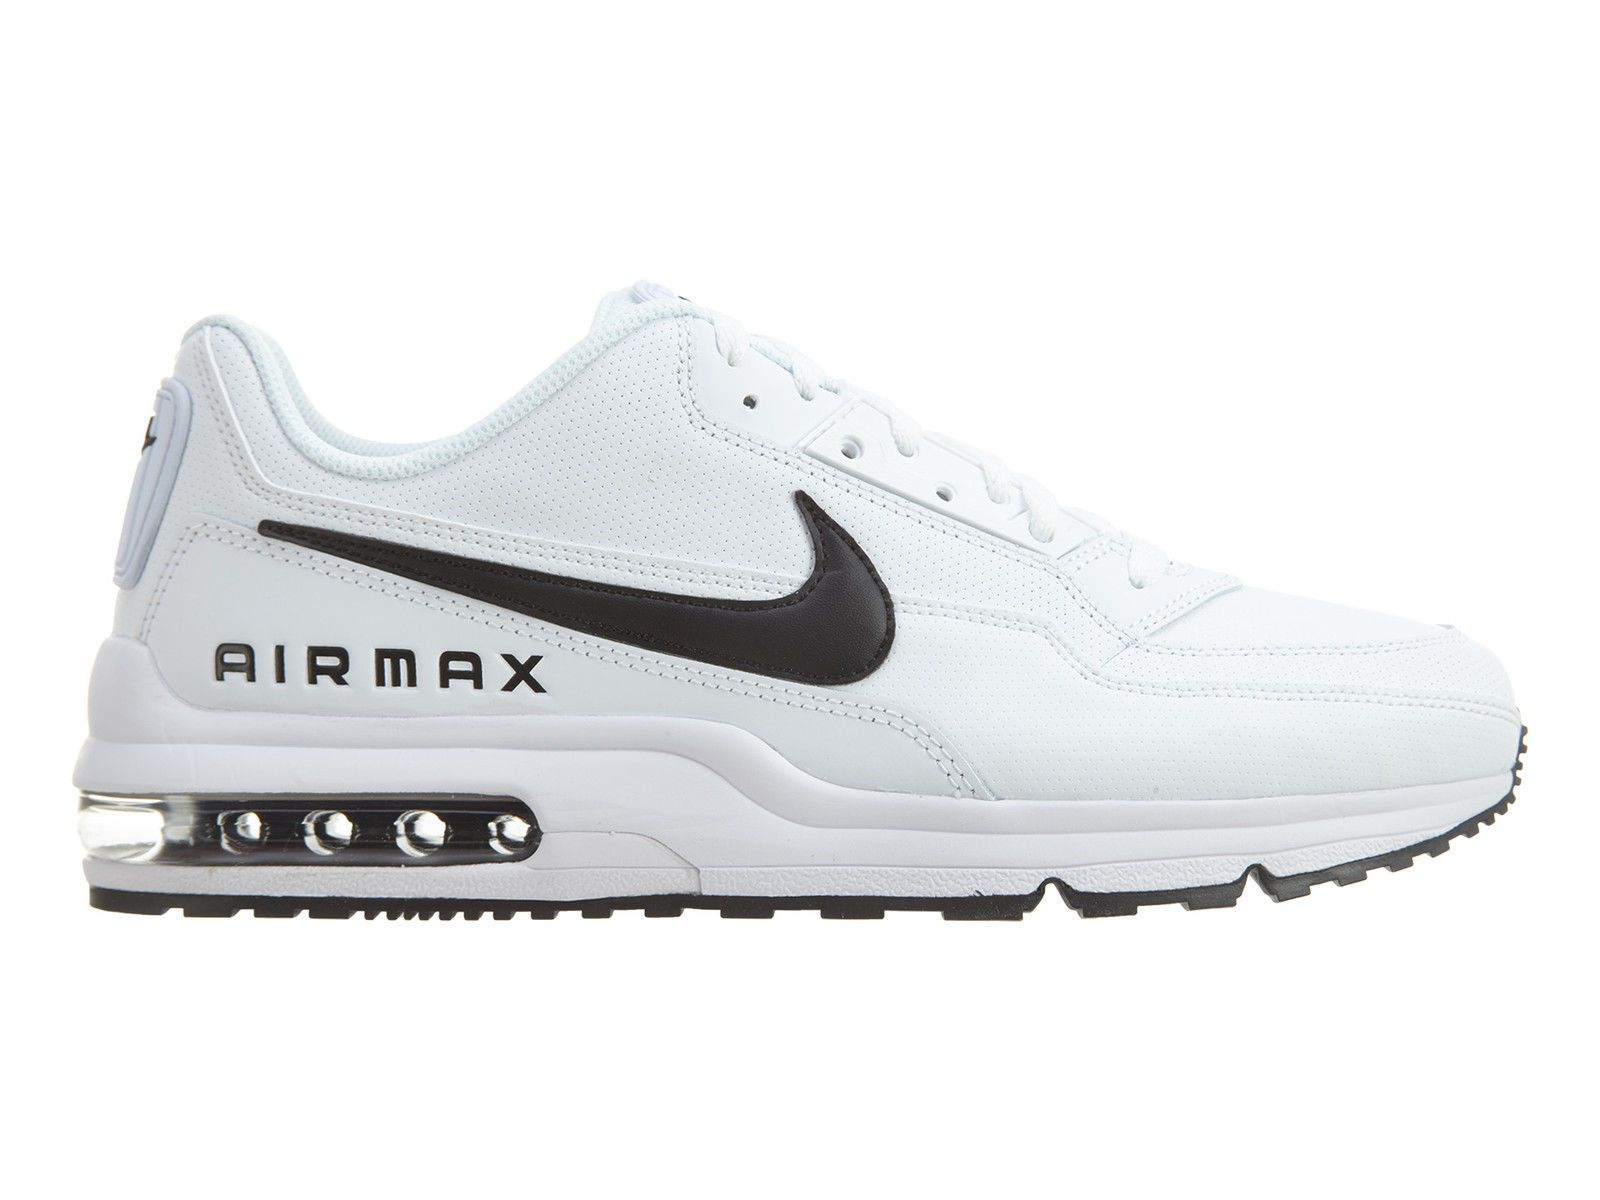 online store f218b be18b Nike Air Max LTD 3 Mens 687977-107 White Black Leather Running Shoes Size 10